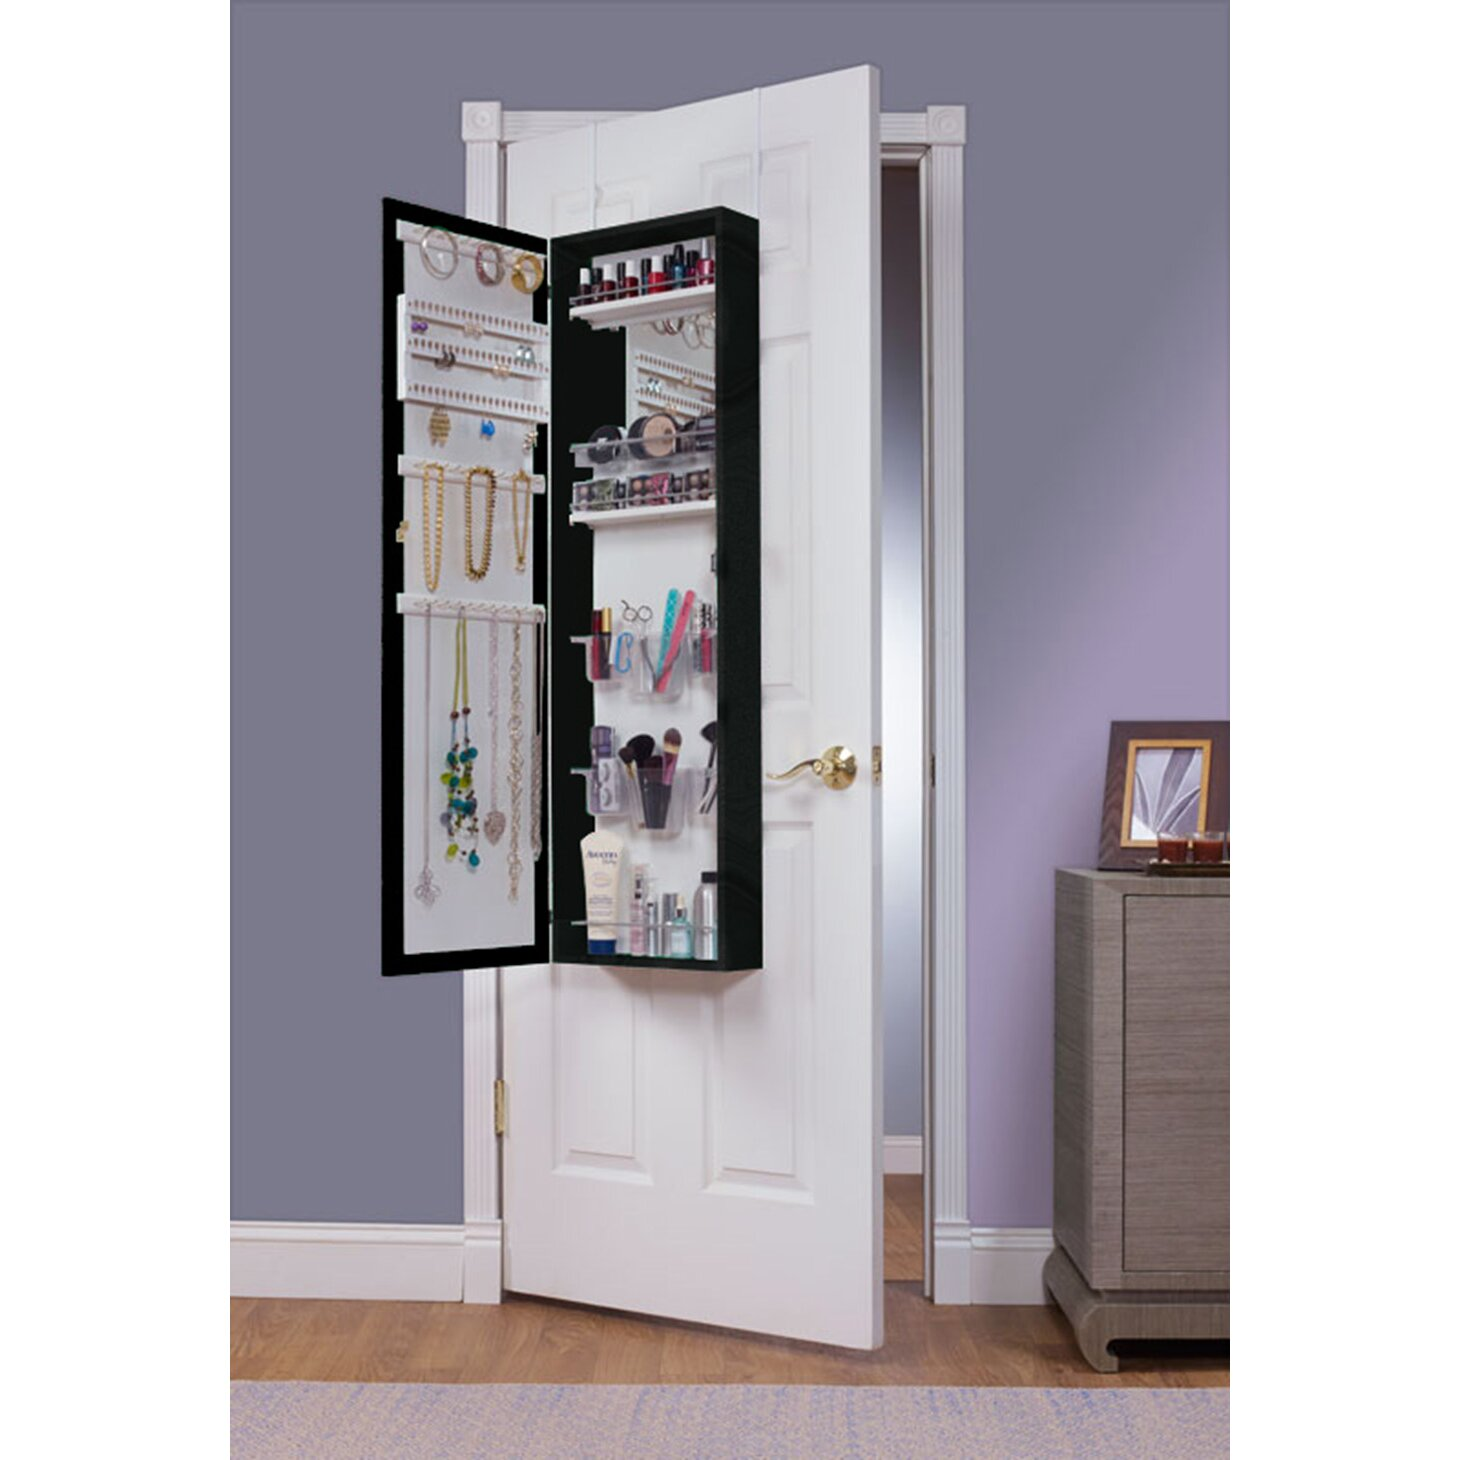 kitchen cabinet overstock with Bination And Makeup Storage Wall Mounted Or Over The Door Jewelry Armoire Eva48 Mek1039 on 7987 as well Product together with Product additionally Product in addition Cultured Marble Vanity Top On Clearance Now At Seigles.